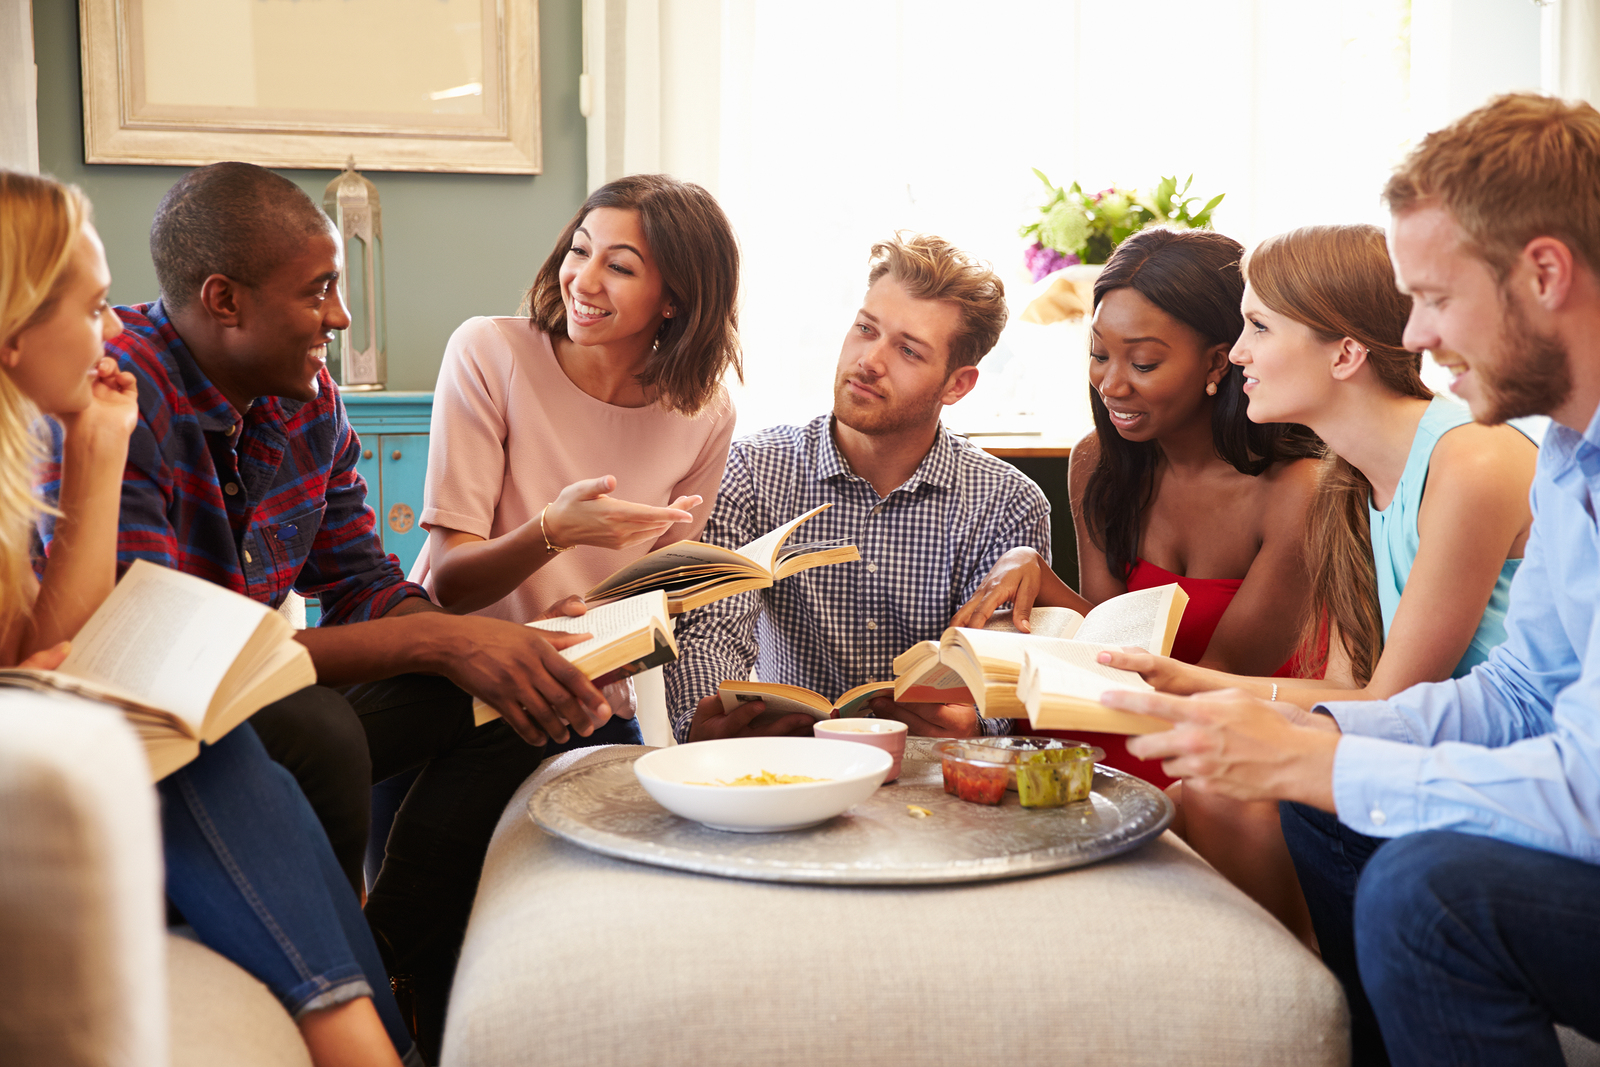 Here are some tips to help you get that book club started!